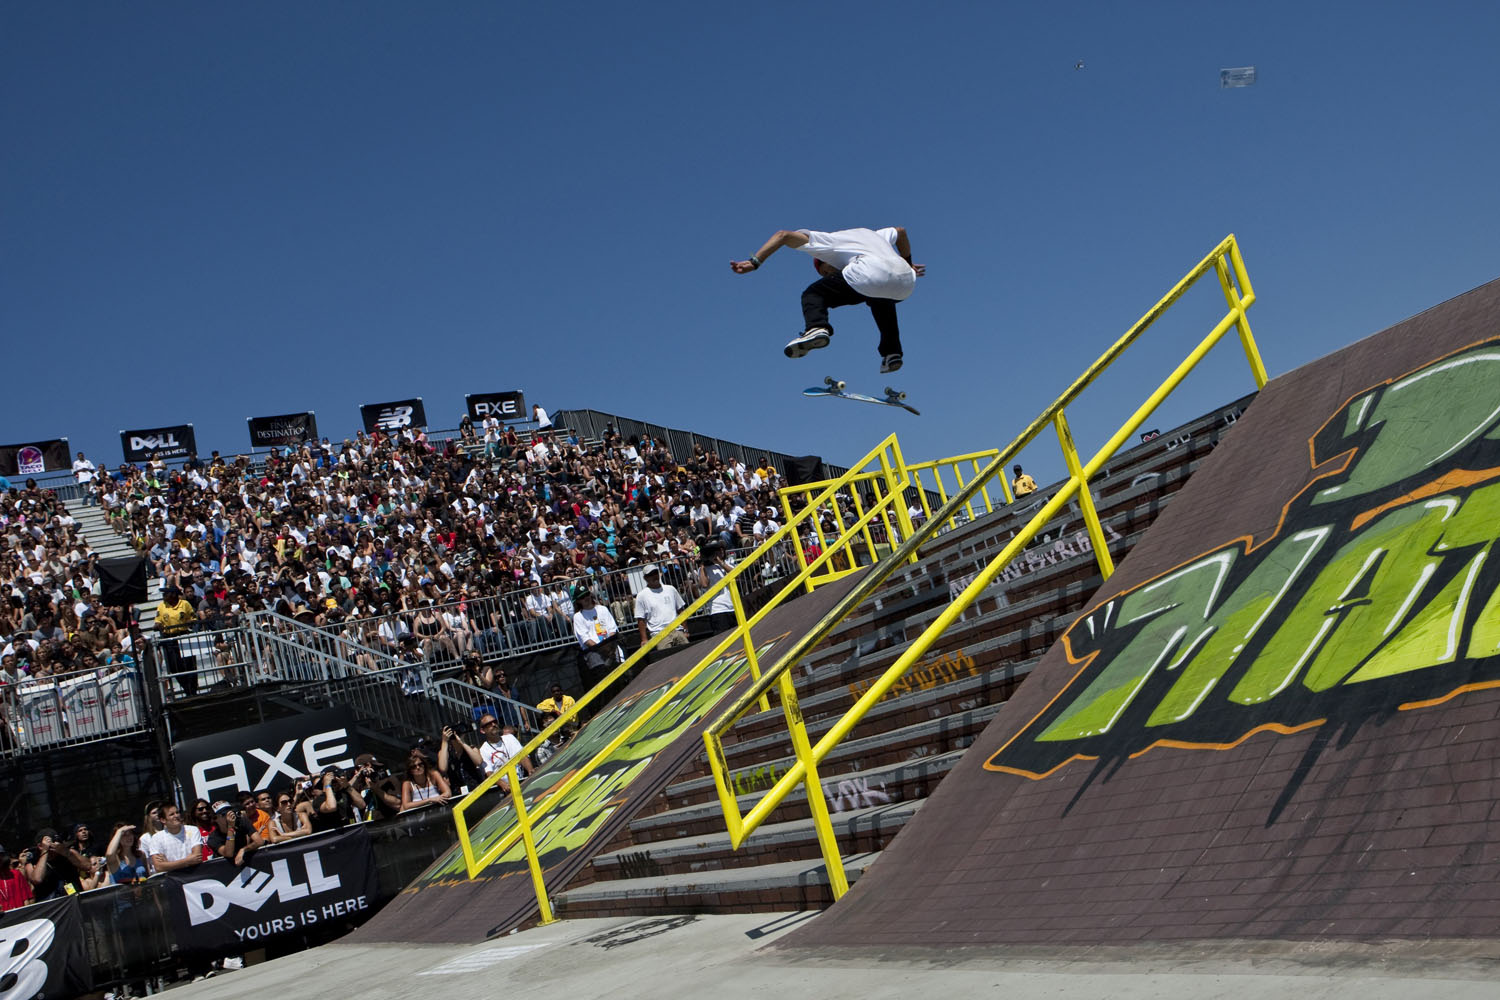 Paul Rodriguez looks to land a trick in the Men's Skateboard Street finals at Summer X Games 15 at Home Depot Center on August 1, 2009 in Carson, California.